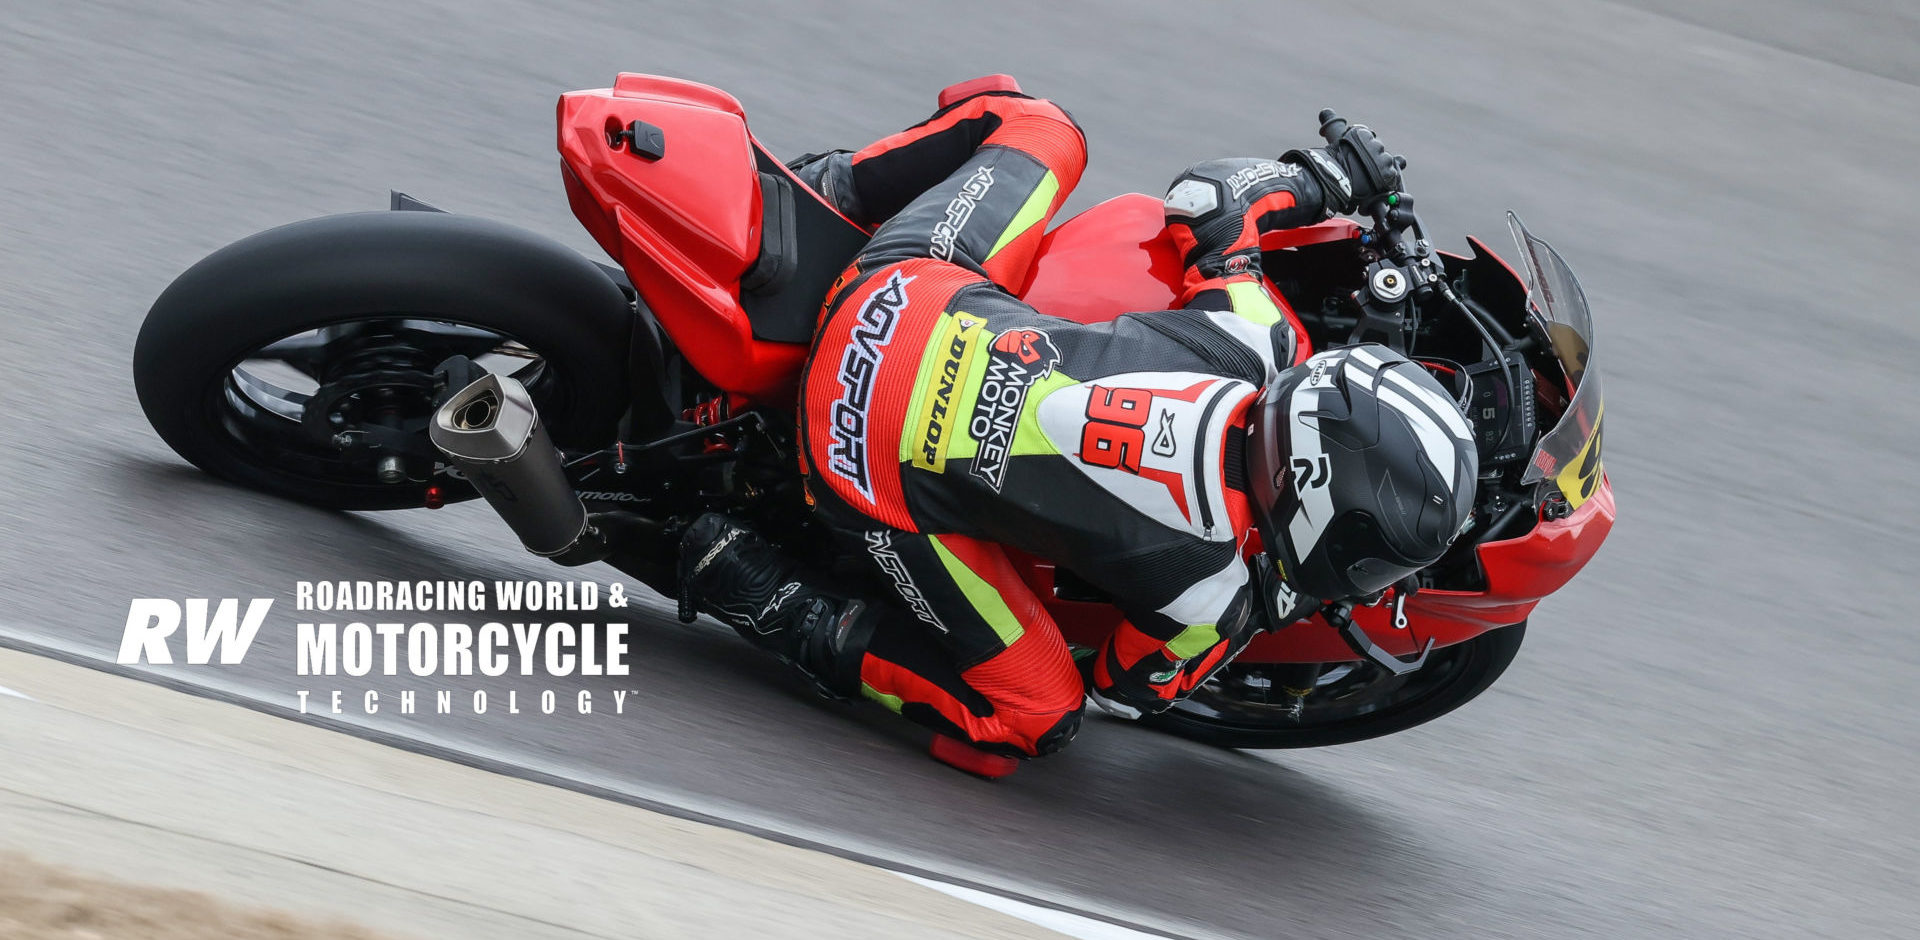 Gus Rodio in action at the 2020 MotoAmerica pre-season test at Barber Motorsports Park. Photo by Brian J. Nelson.